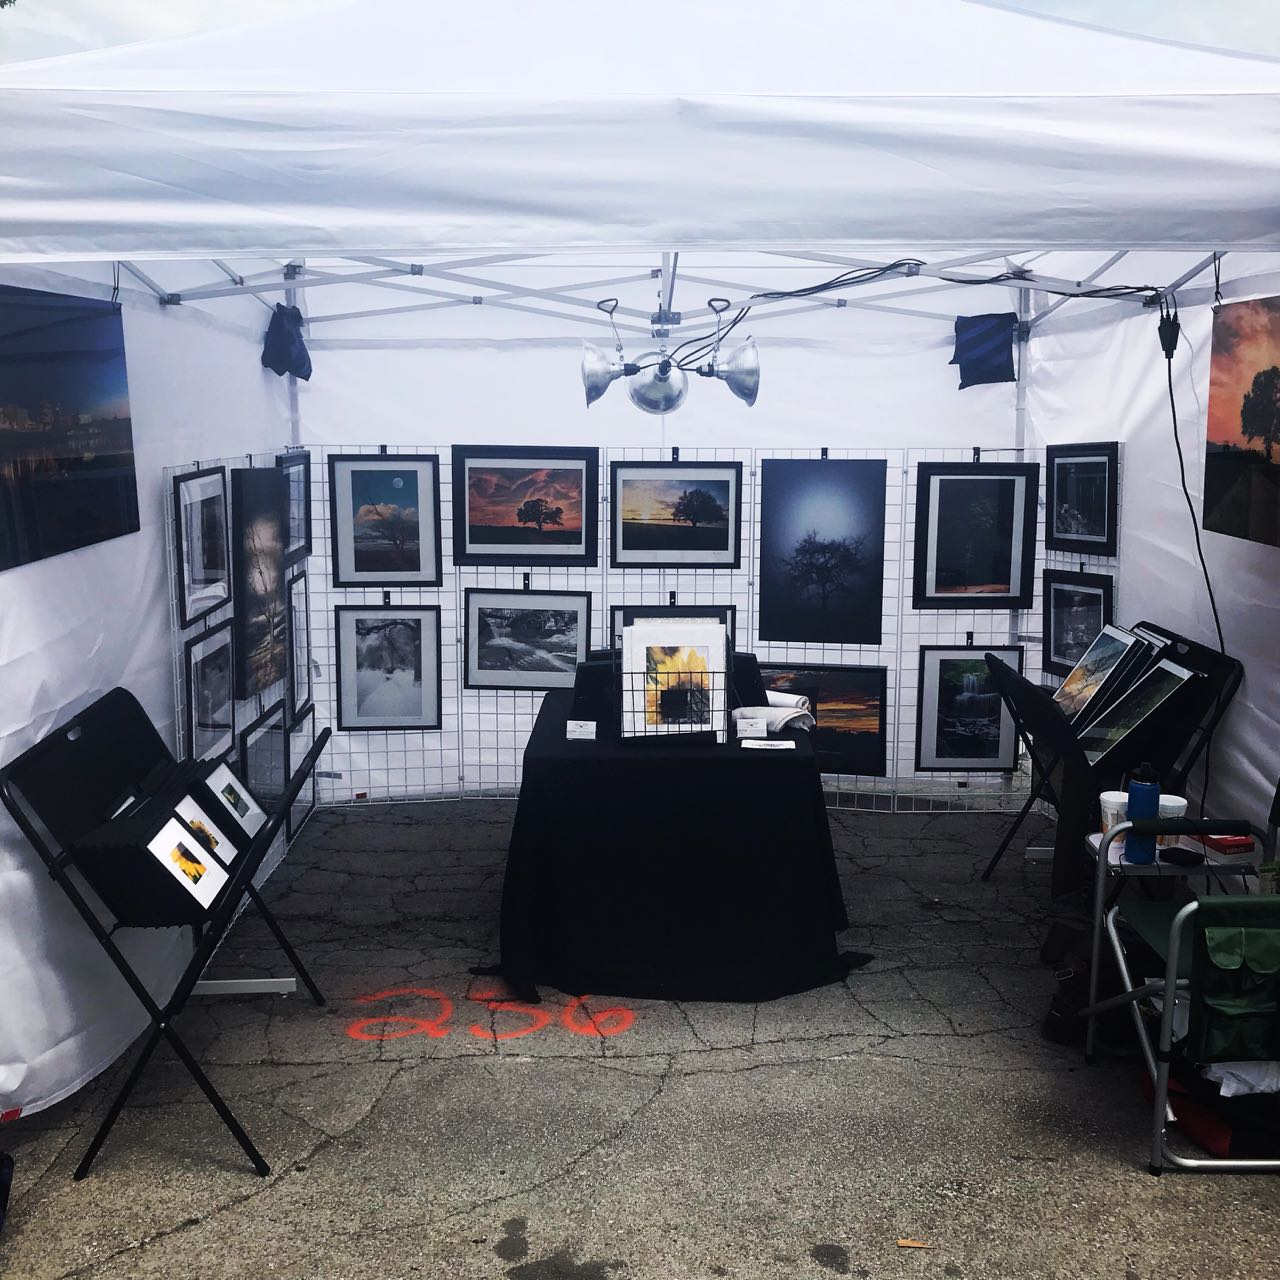 My booth this past weekend.